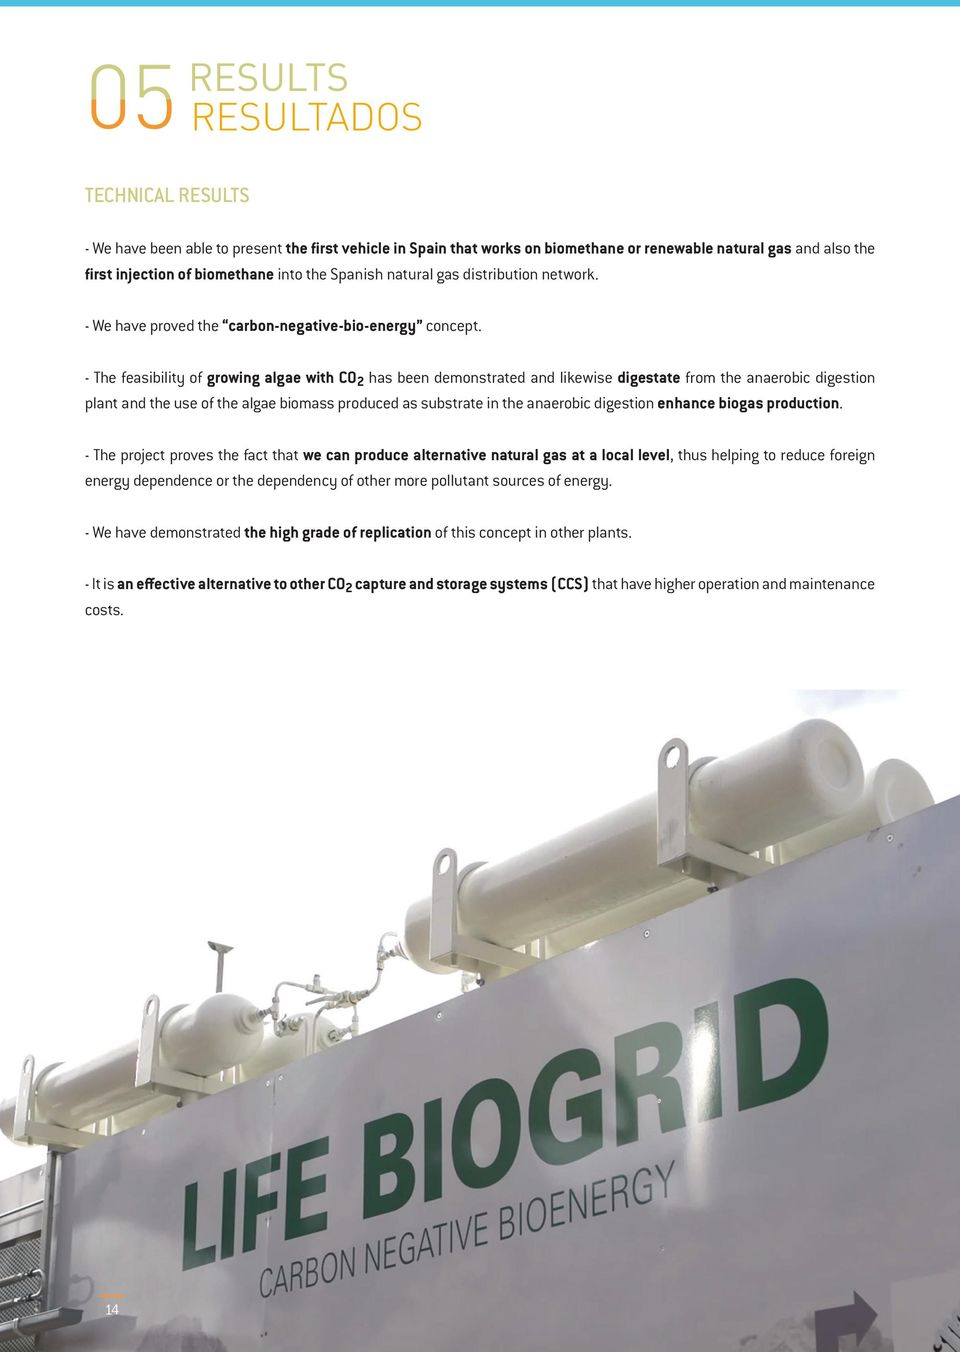 - The feasibility of growing algae with CO 2 has been demonstrated and likewise digestate from the anaerobic digestion plant and the use of the algae biomass produced as substrate in the anaerobic